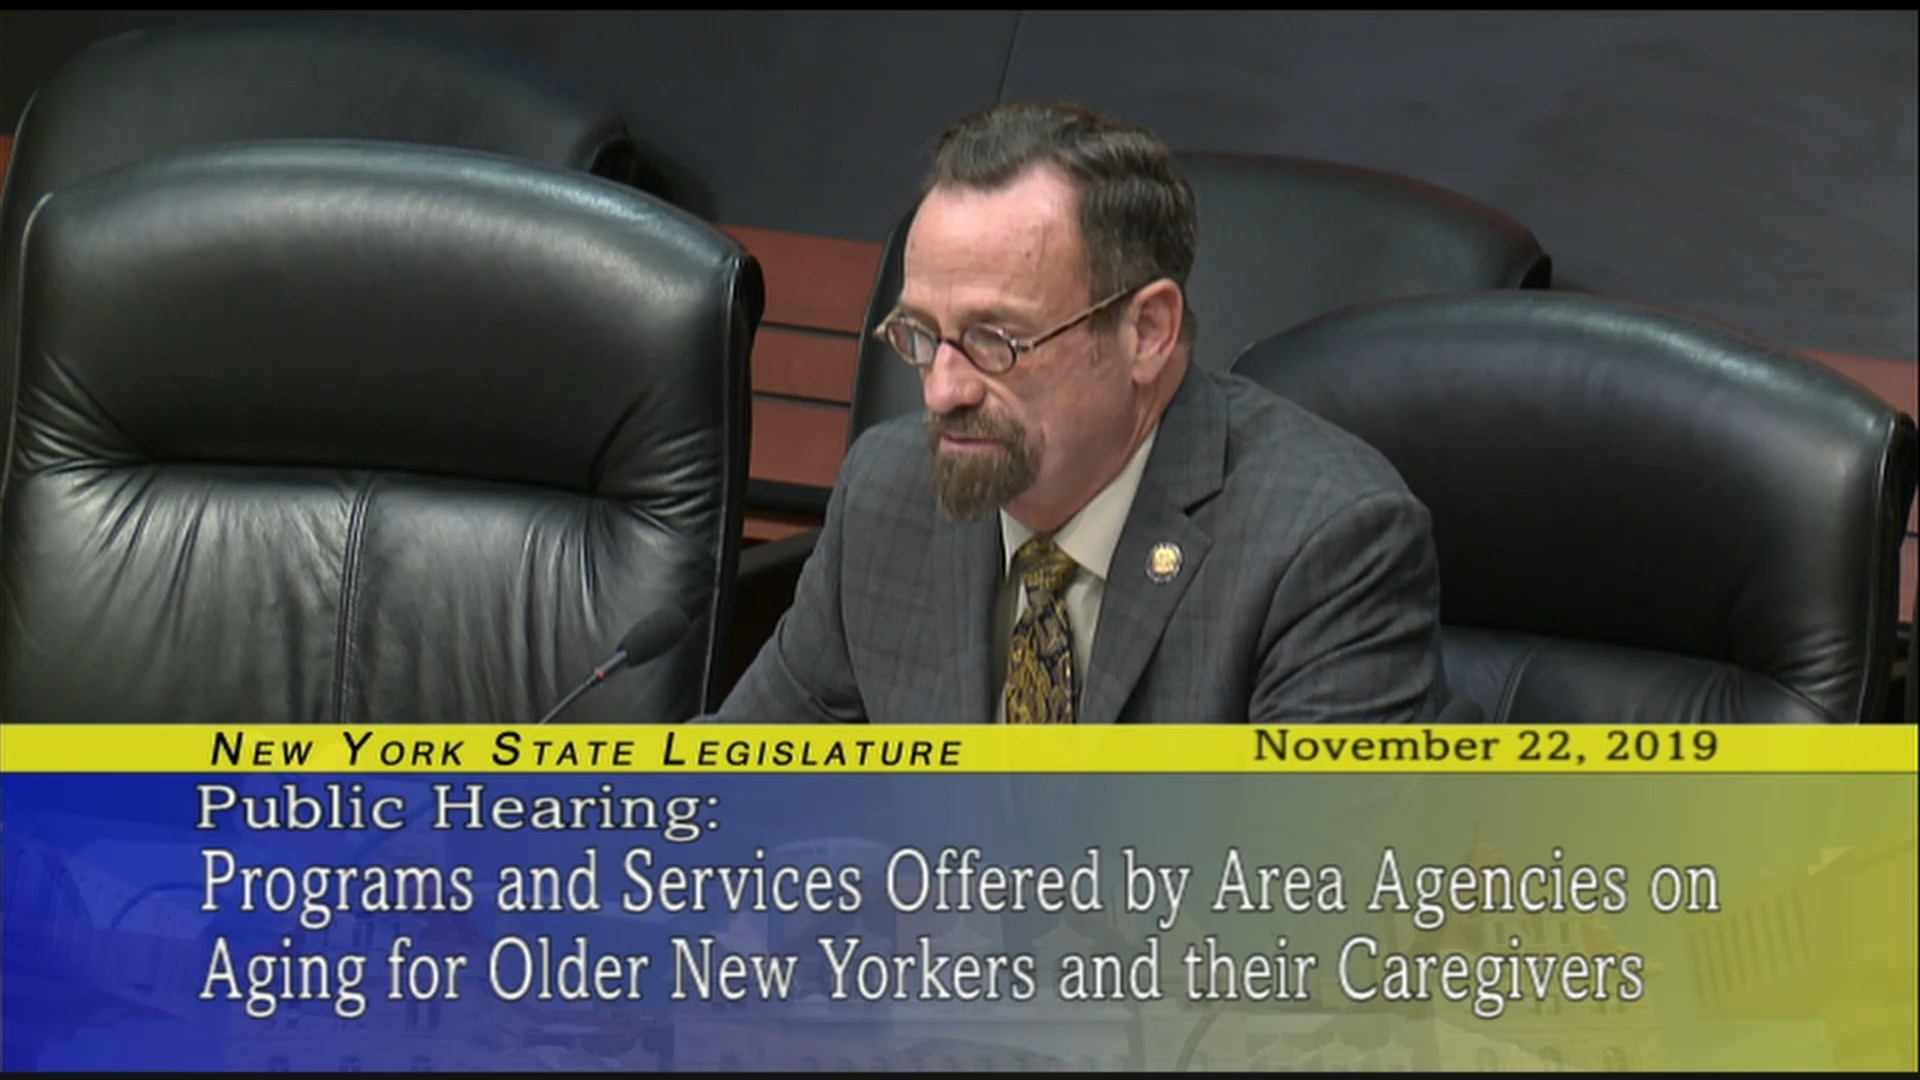 Public Hearing On Programs And Services For Aging New Yorkers (7)